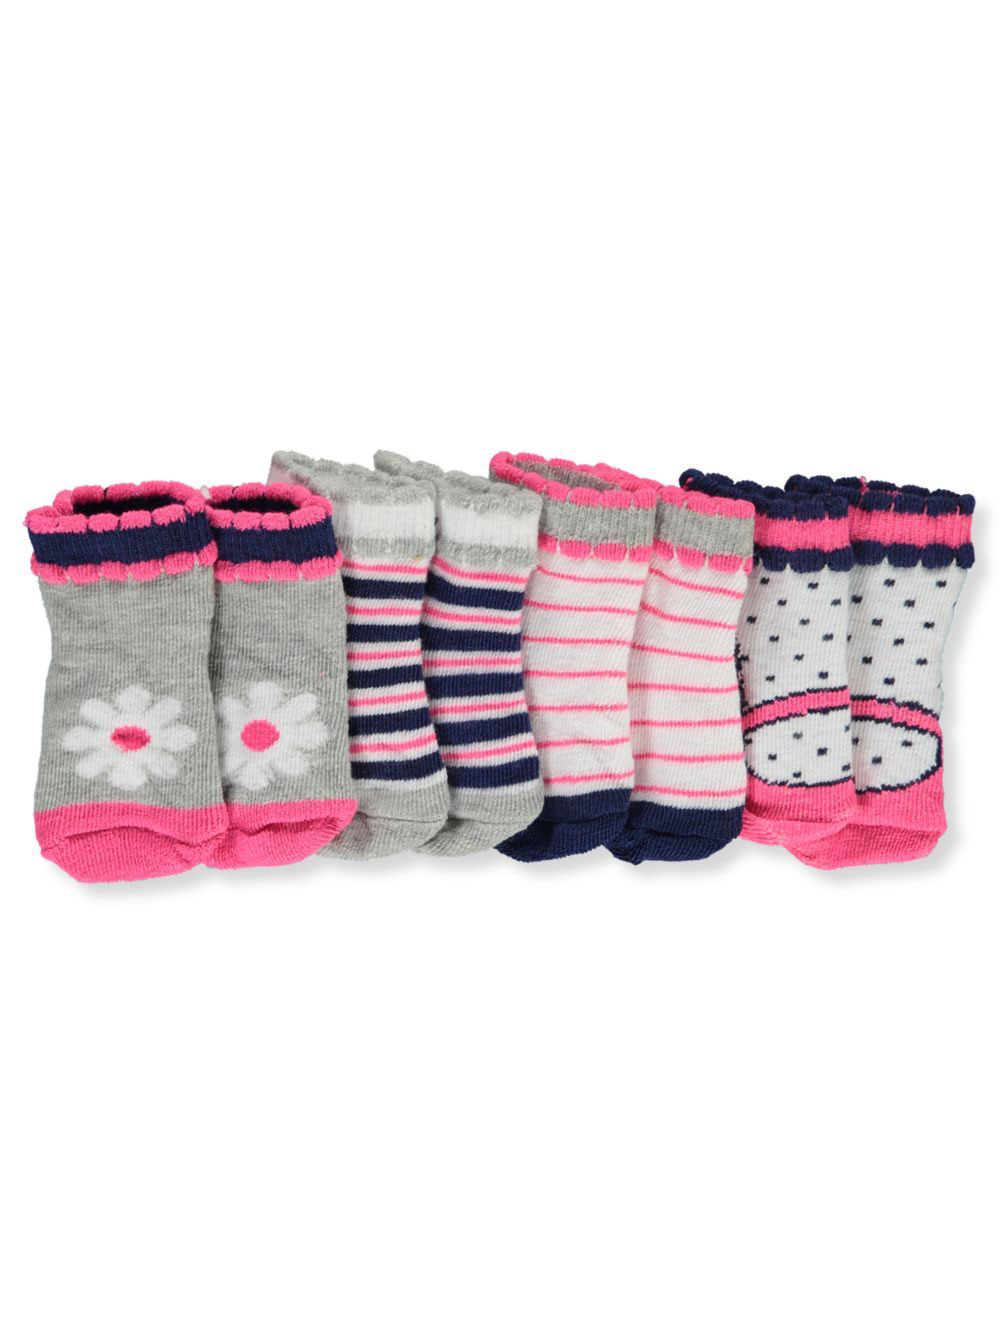 Socks Piper and Jax 4-Pack Bootie